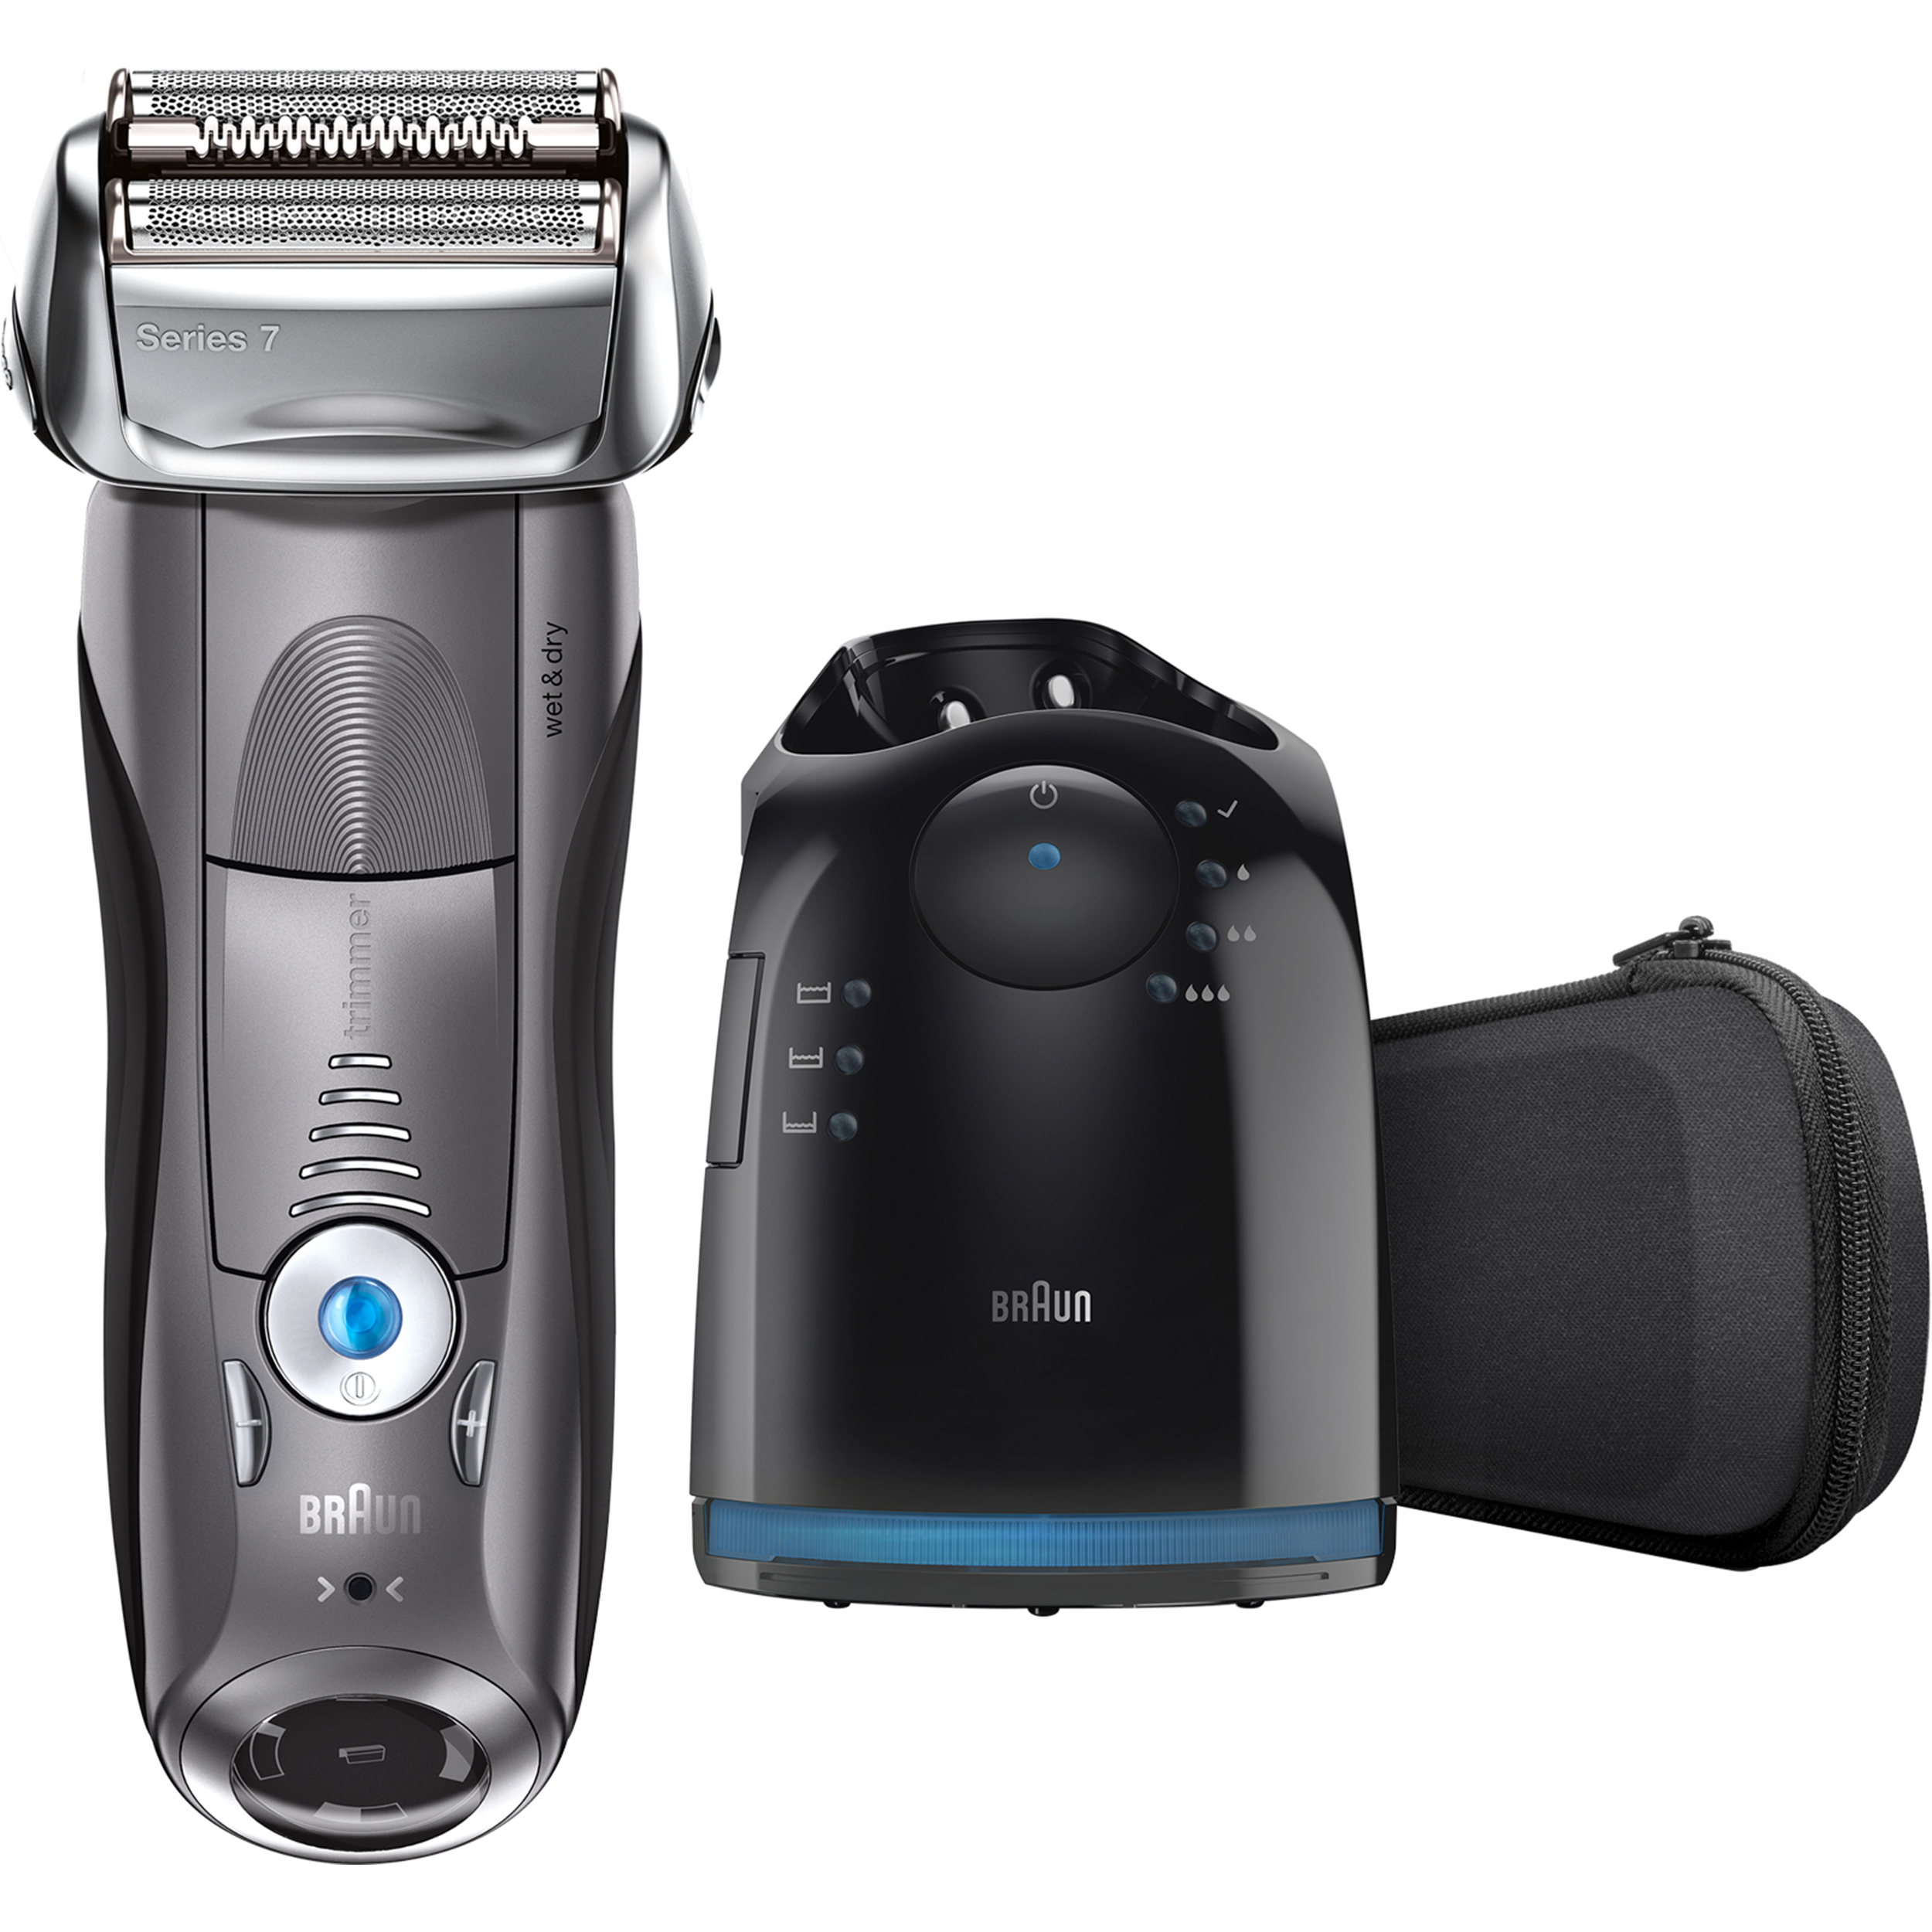 Braun Series 7 790cc ($30 Rebate Available) Men's Electric Foil Shaver, Rechargeable and Cordless Razor with Clean & Charge Station